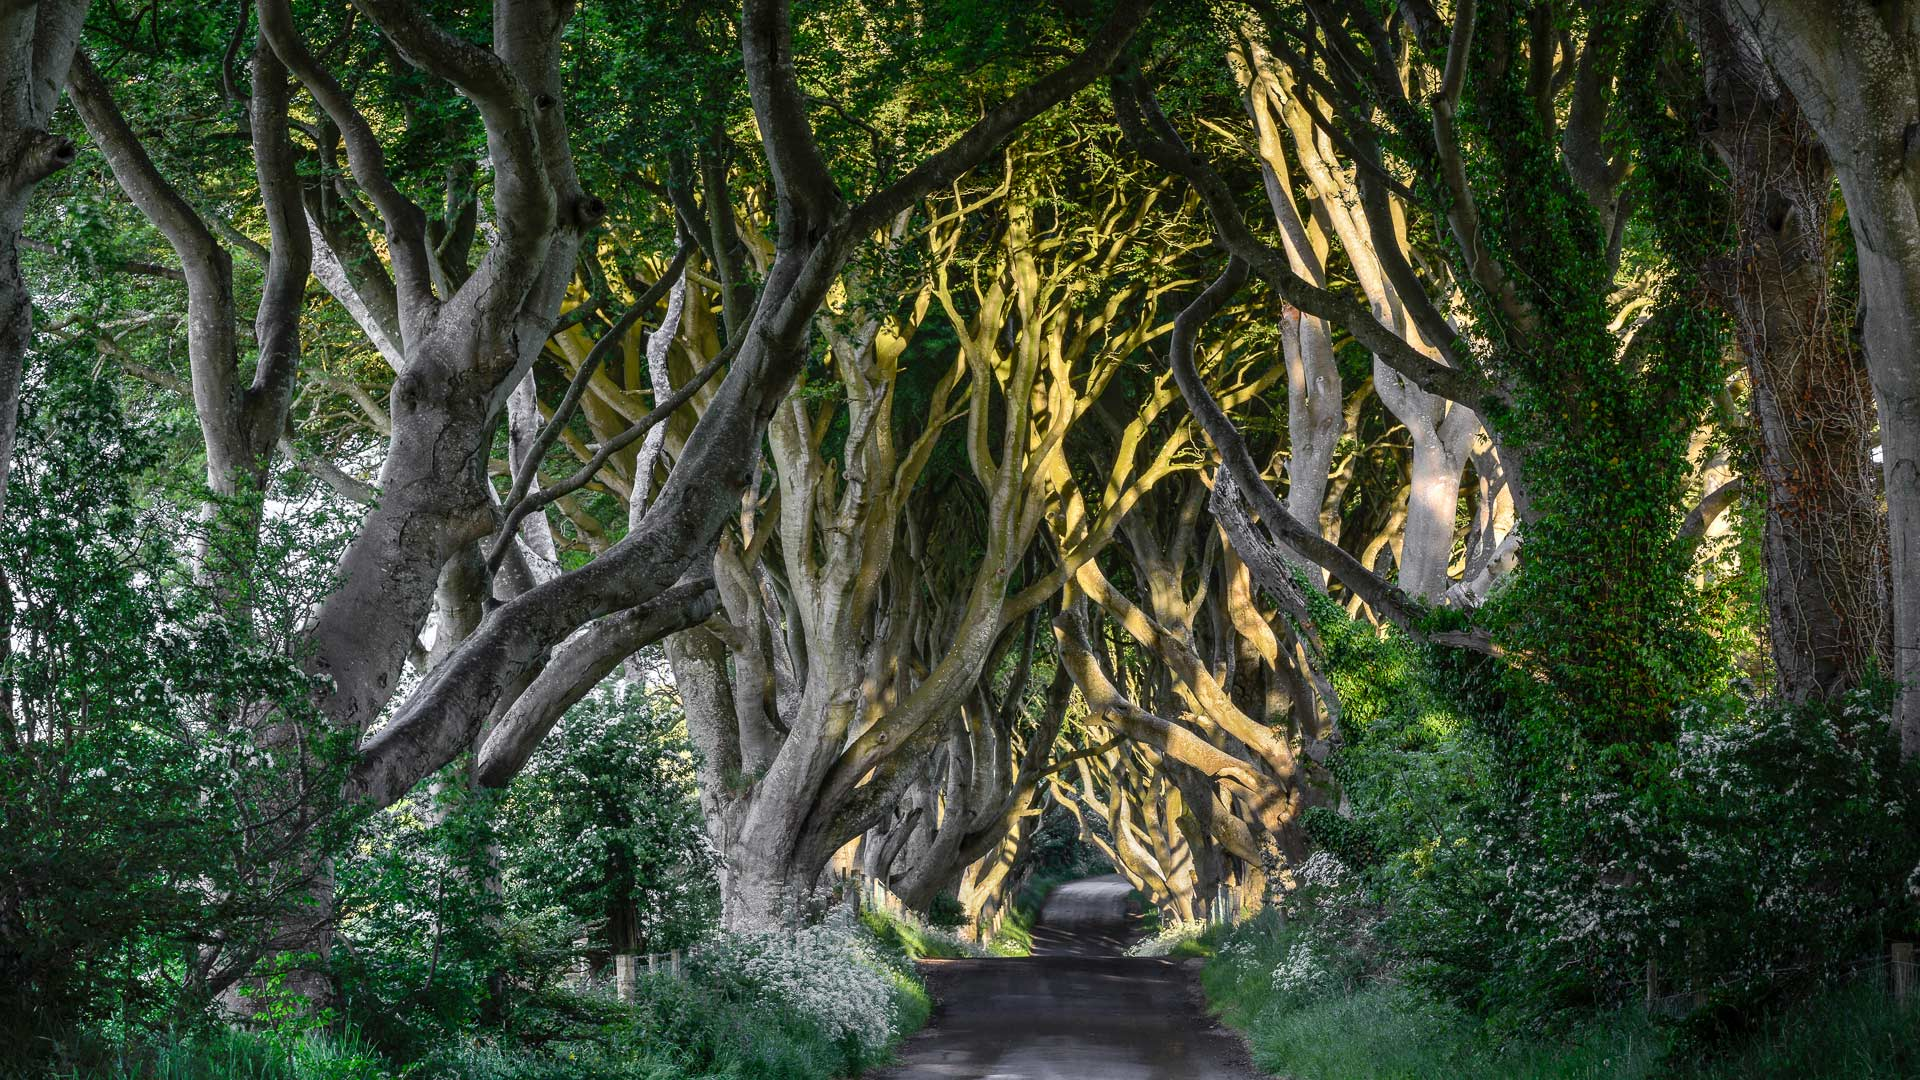 The Dark Hedges County Antrim Bregagh Road Northern Ireland UK 1920x1080